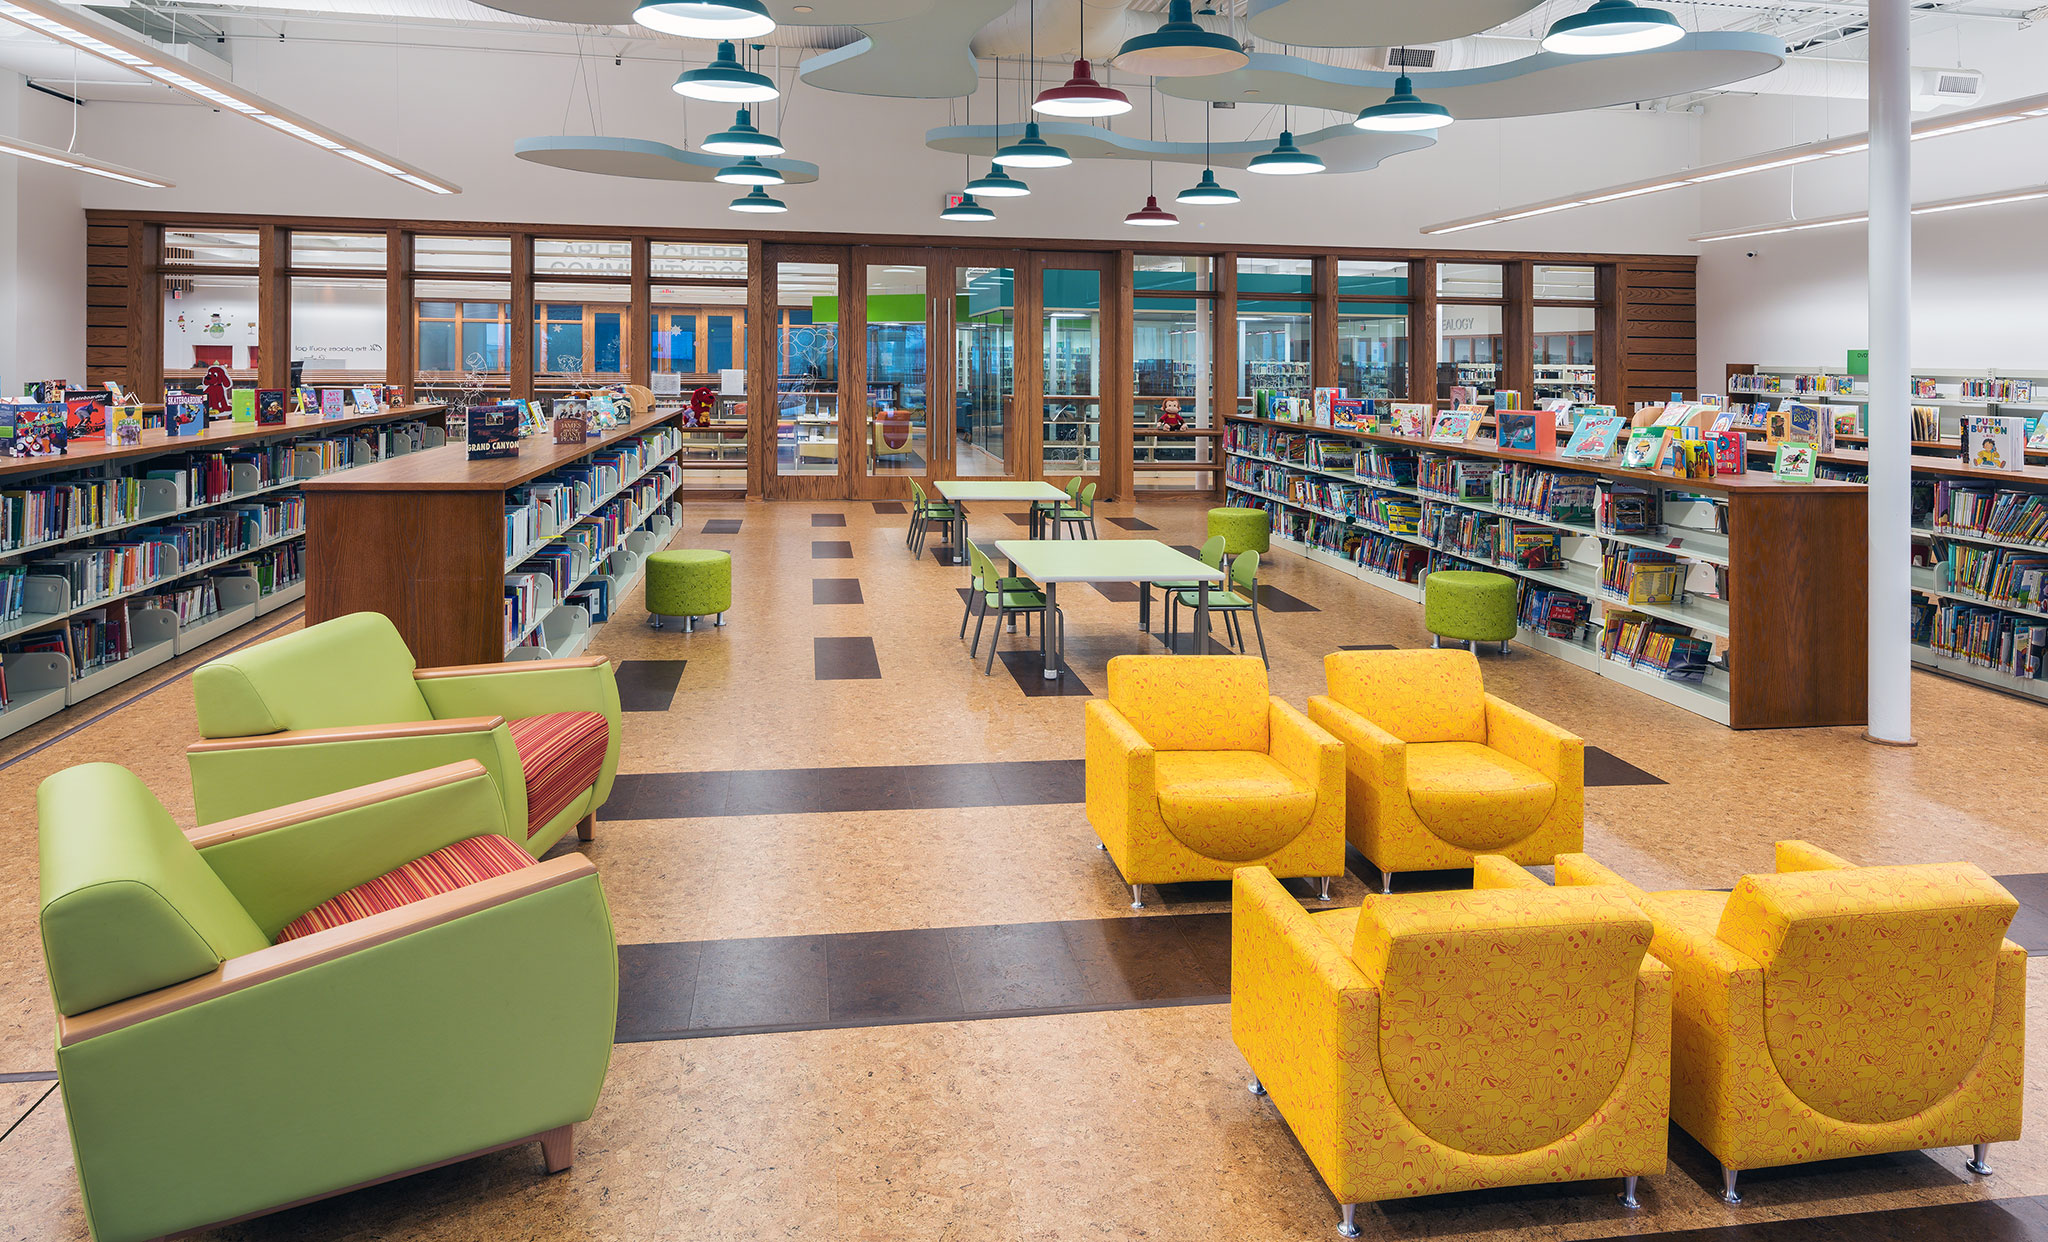 Cabot_library06_TeaCup_Sela_library_corbett_norristown_experience-center.jpg